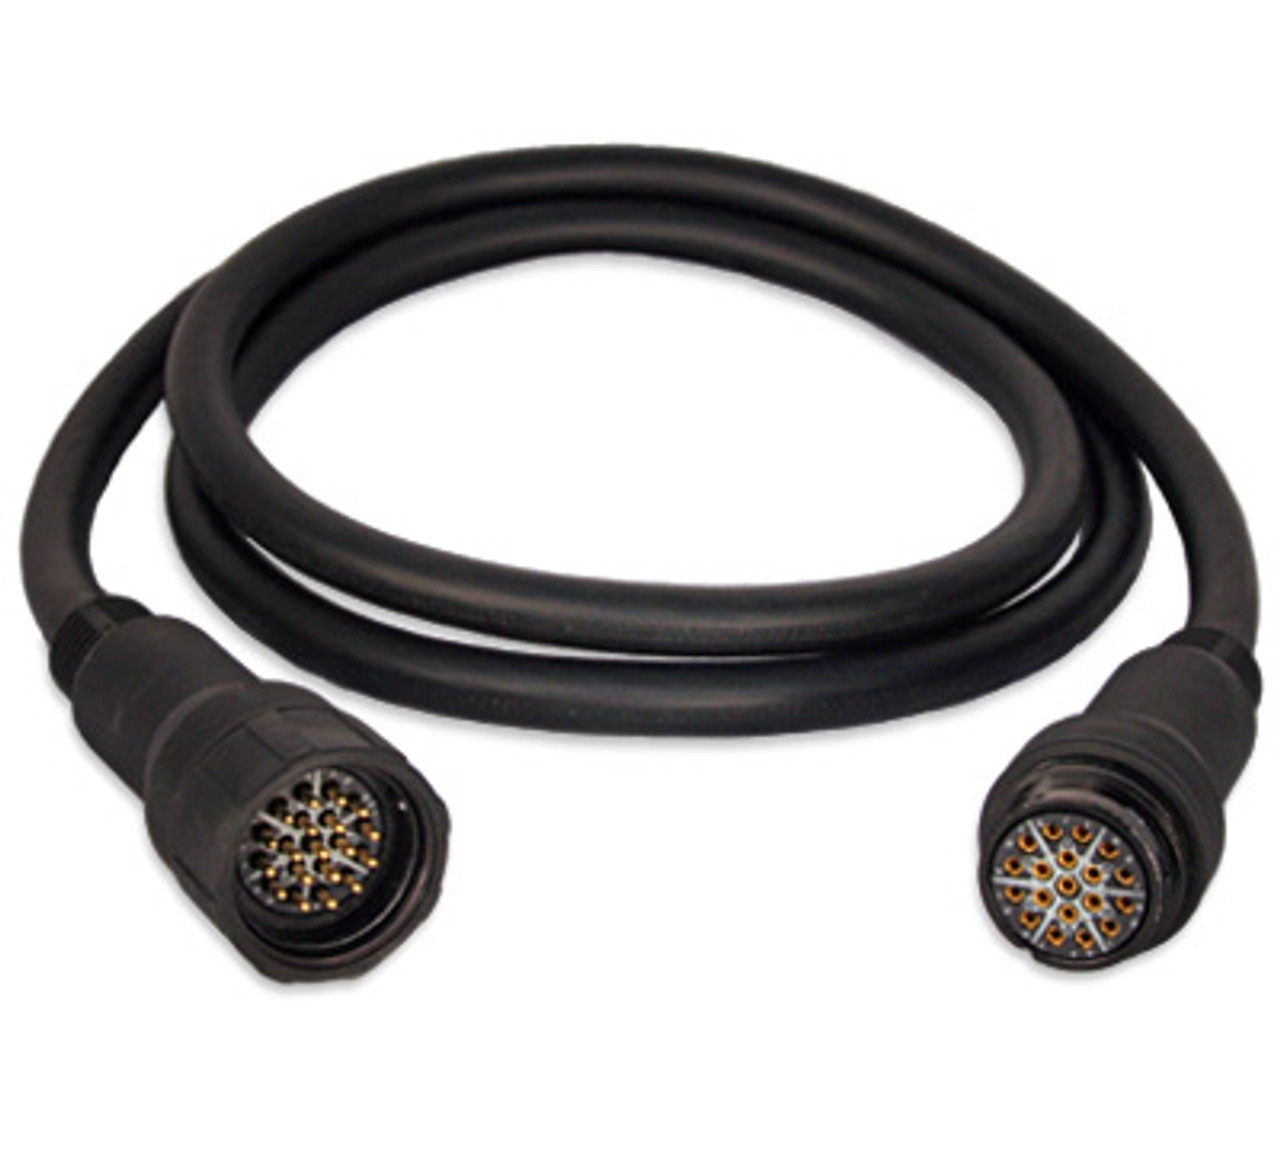 Lex 20 Amp EverGrip Molded Multi-Cable, 25' Length